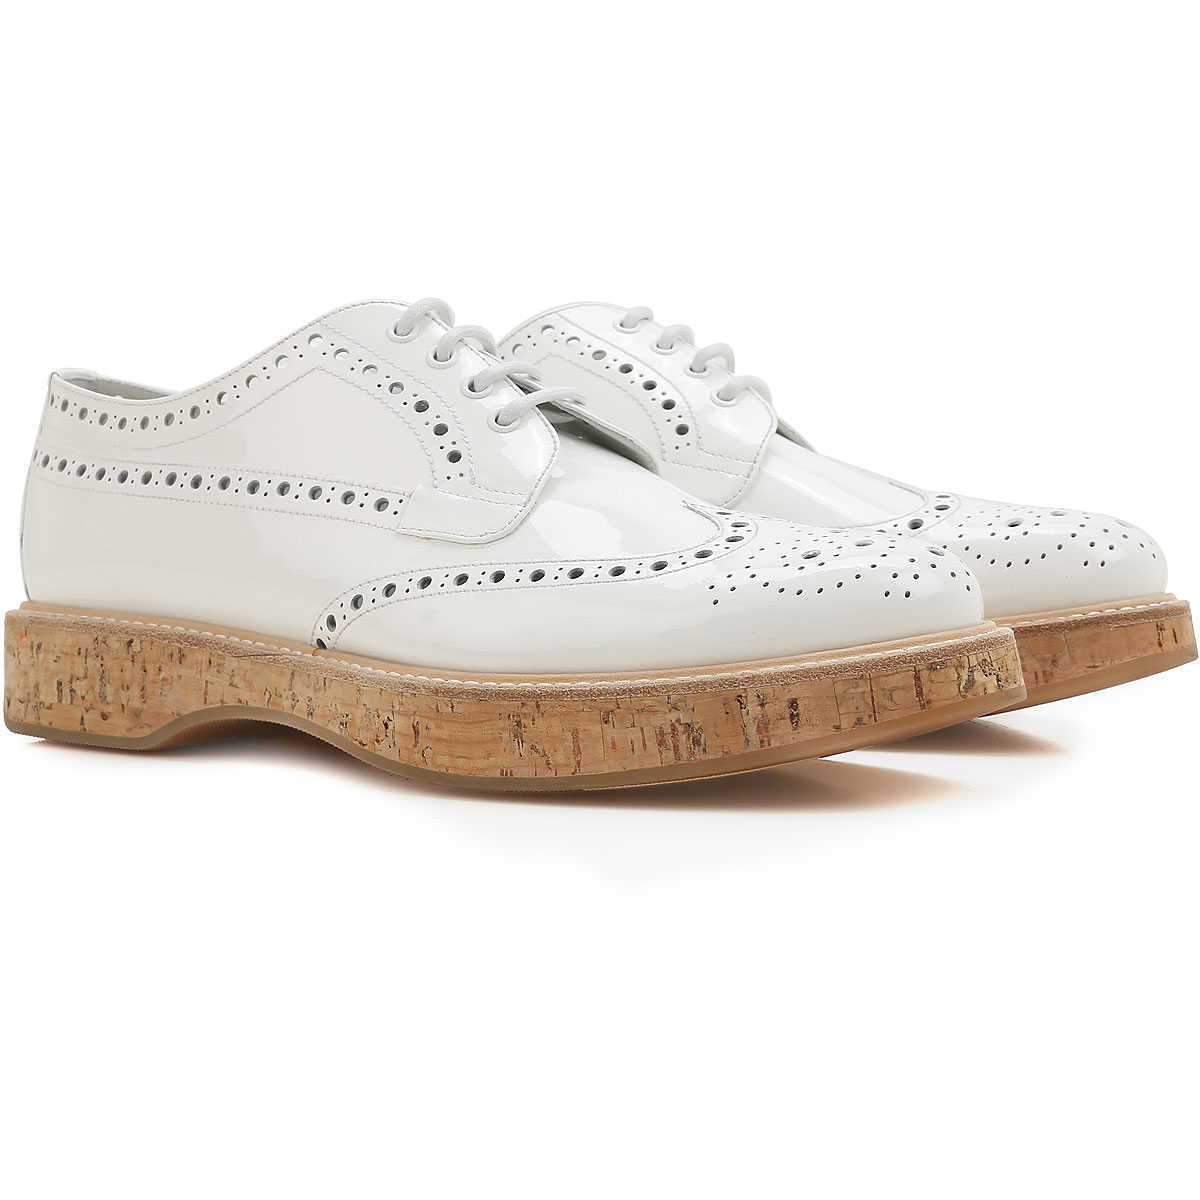 Church's Oxford Lace up Shoes for Women On Sale in Outlet White - GOOFASH